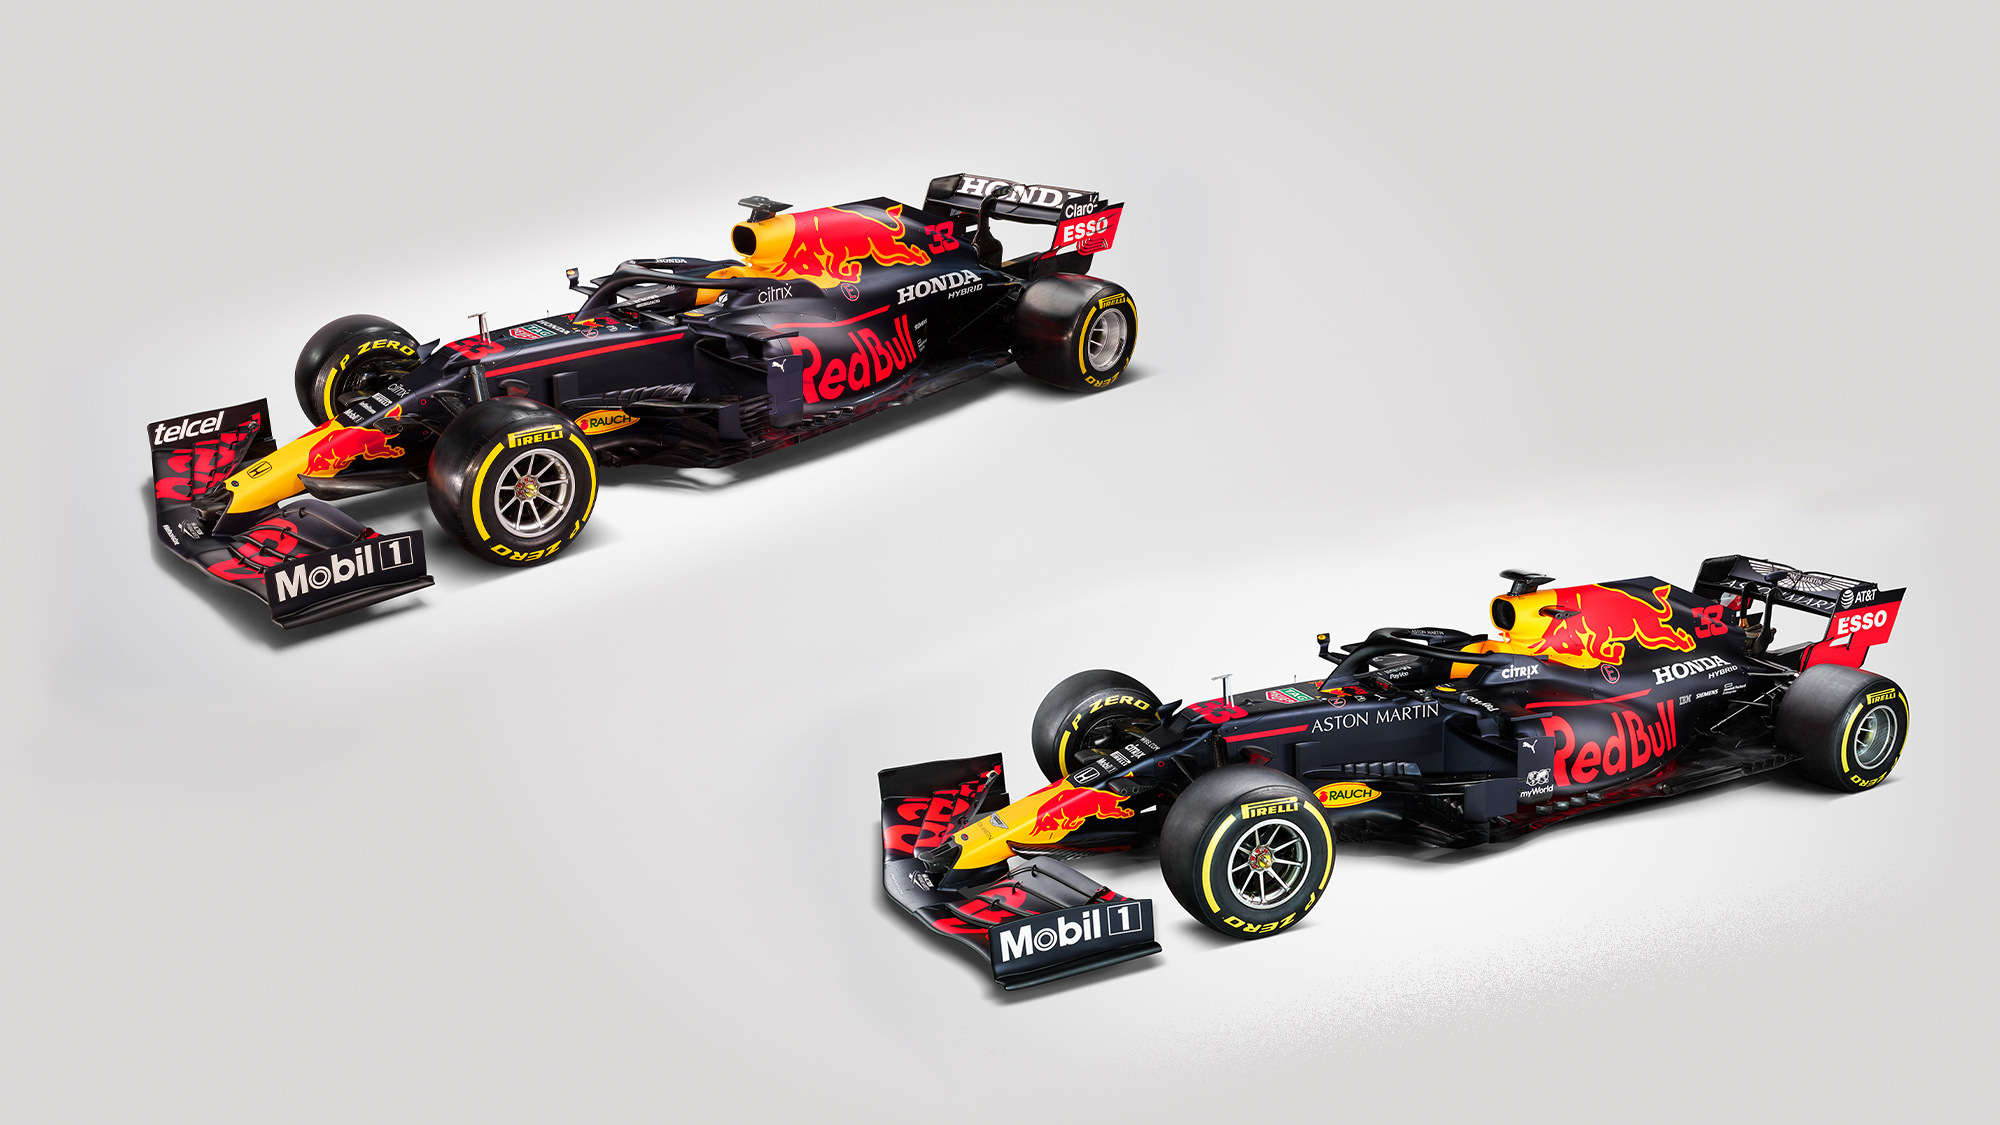 Reb Bull RB16 and RB16B